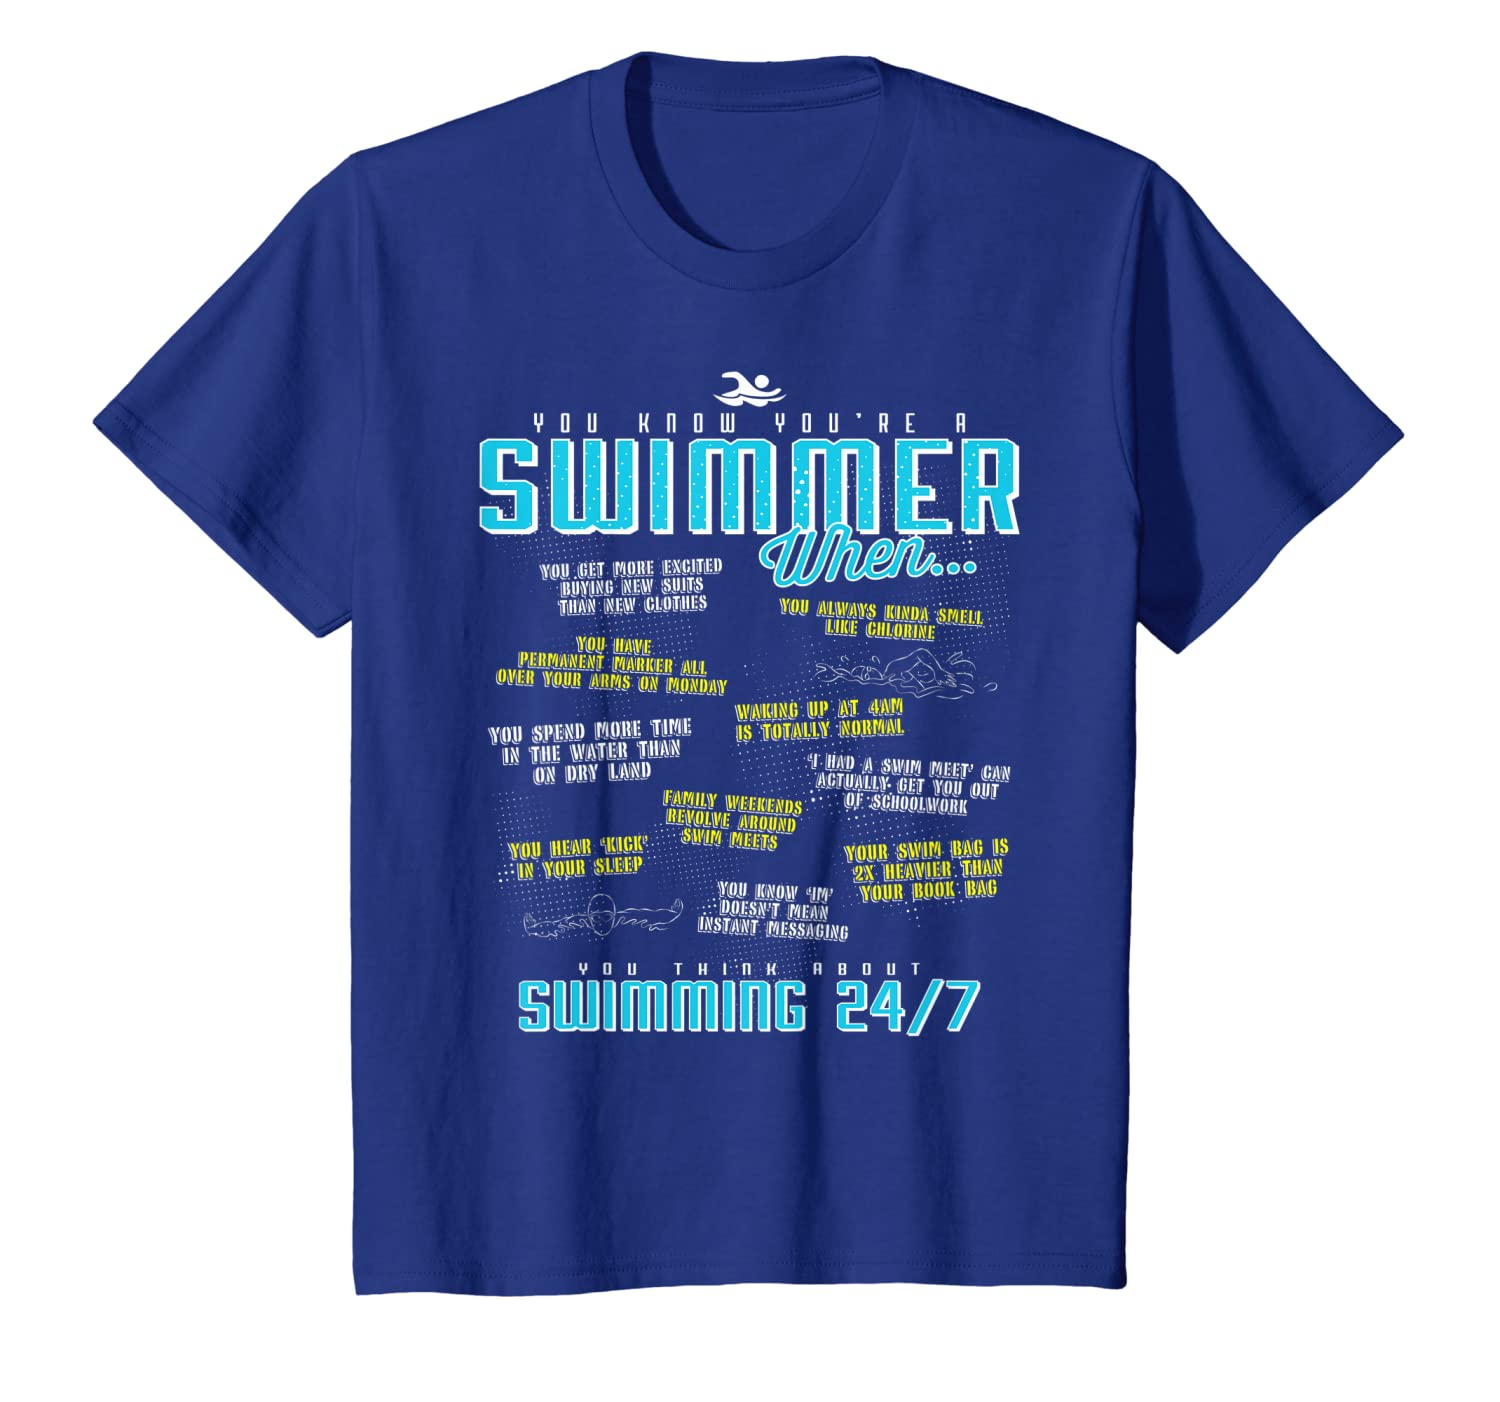 450d6b90 Amazon.com: You Know You're A Swimmer When Funny Swim T Shirt: Clothing